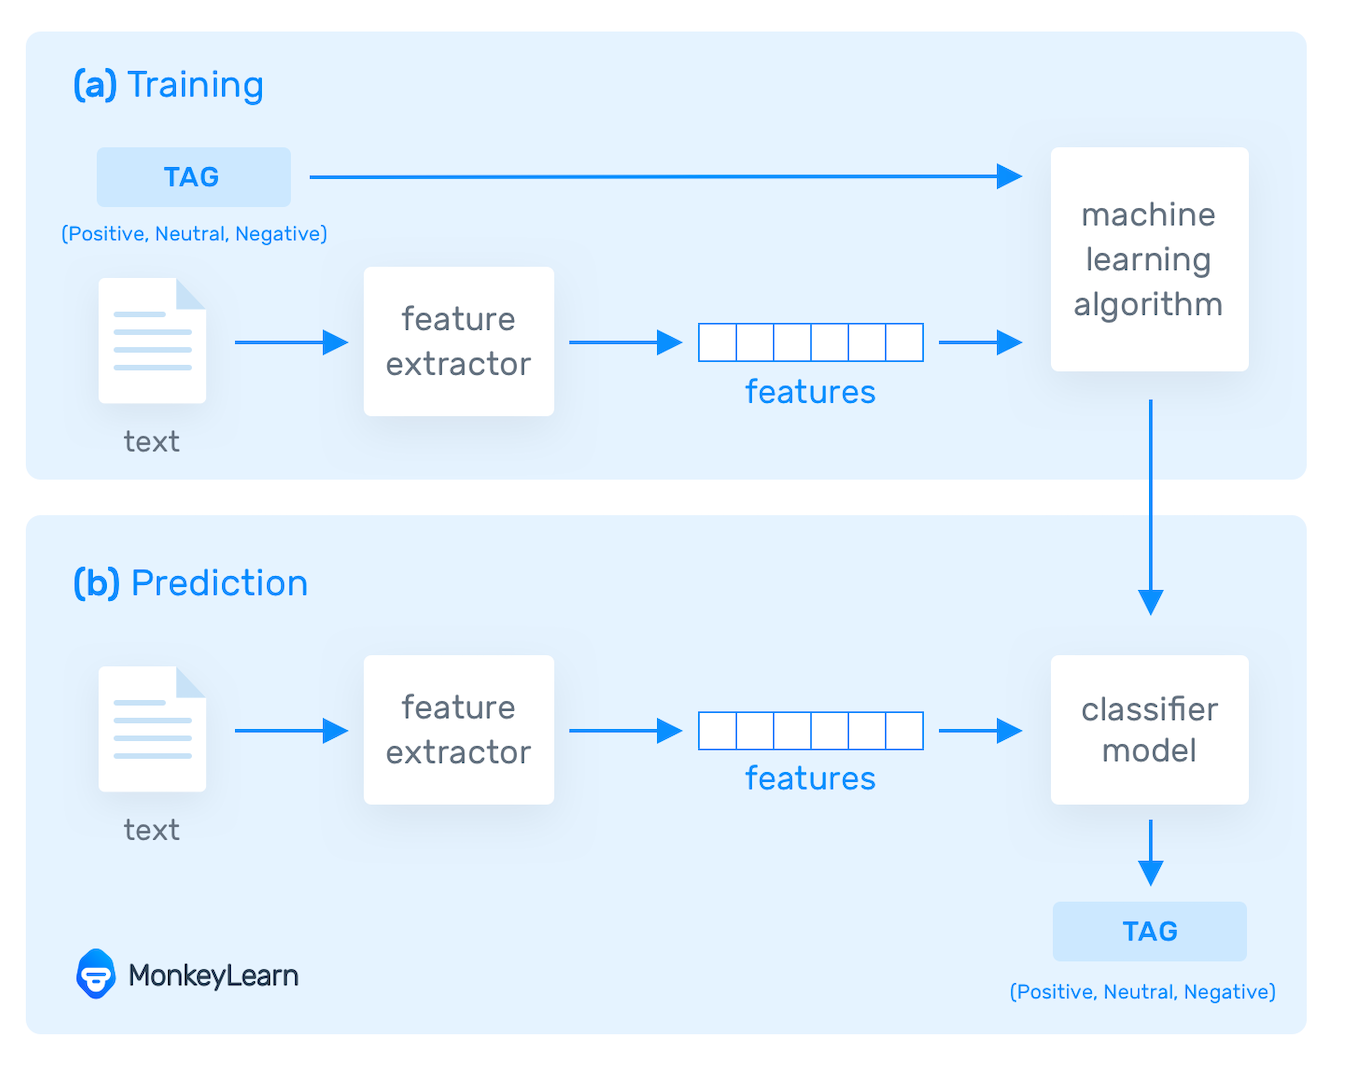 Machine learning process, from training to prediction